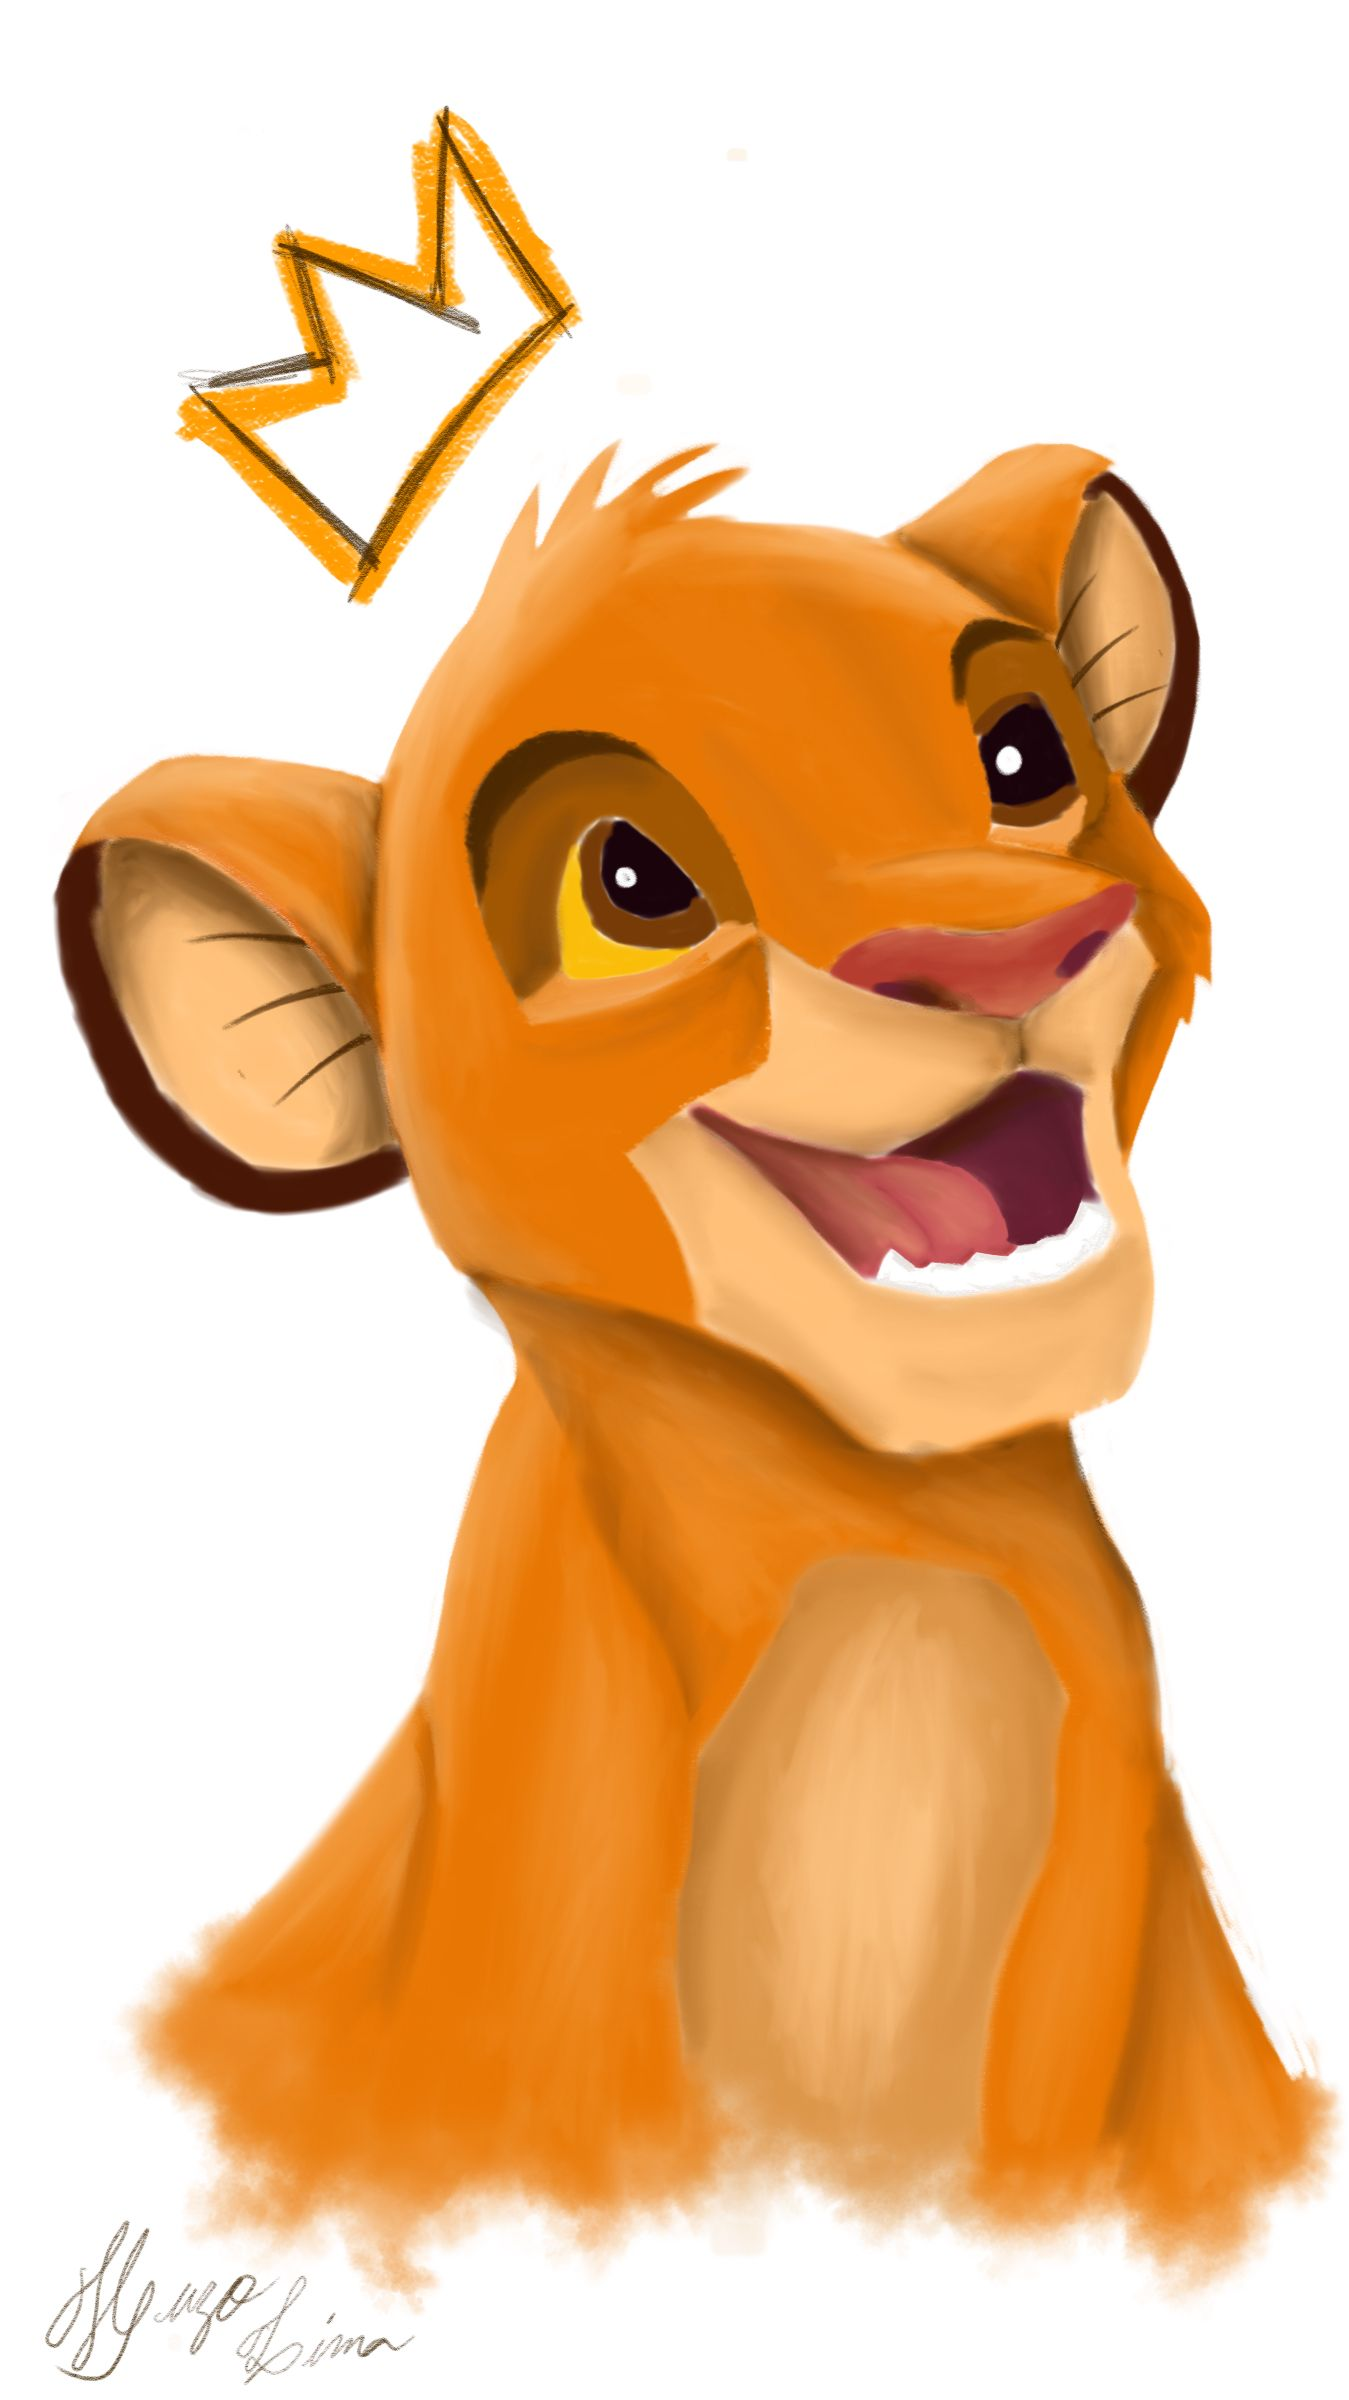 Drawing of Simba, The lion king, smatphone drawing, desenho Simba rei leão no celular